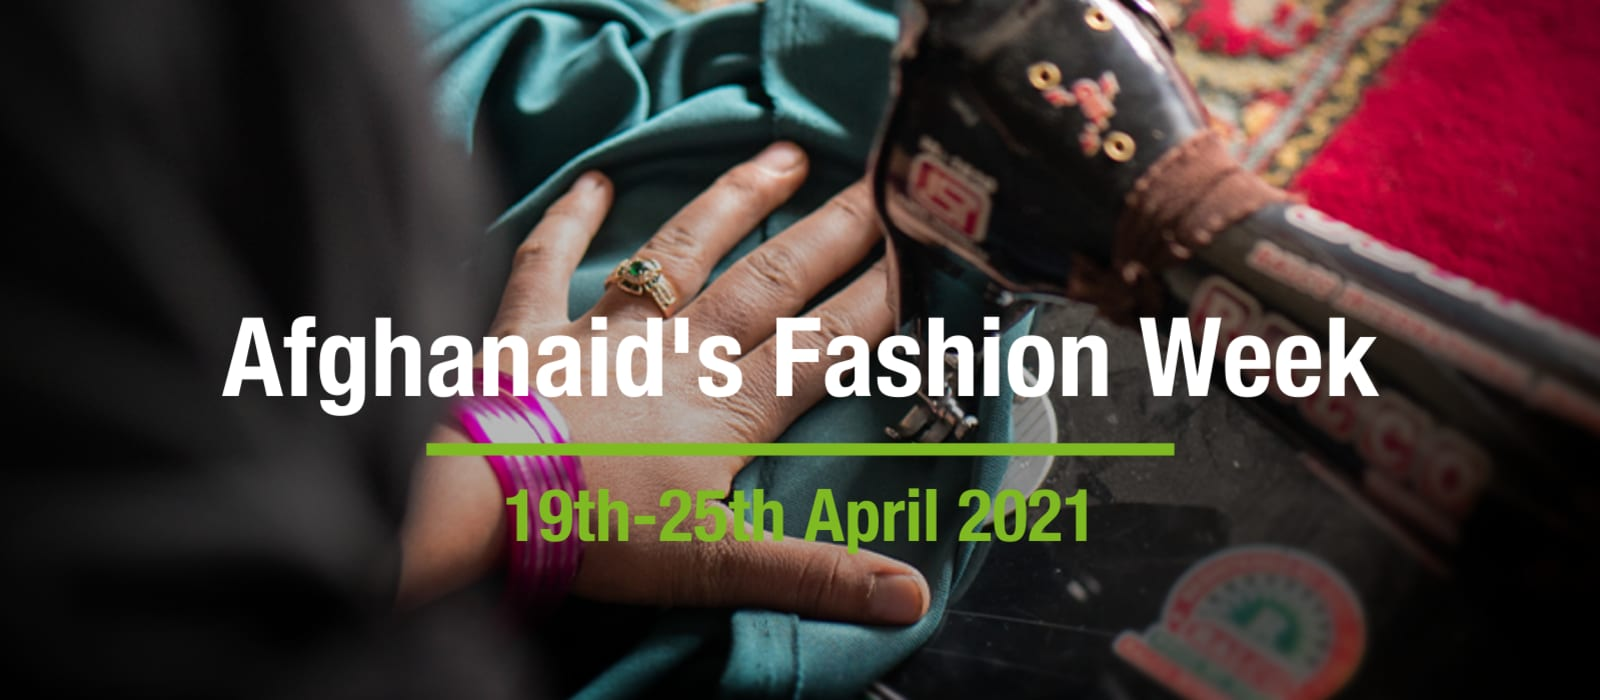 afghanaids-fashion-week